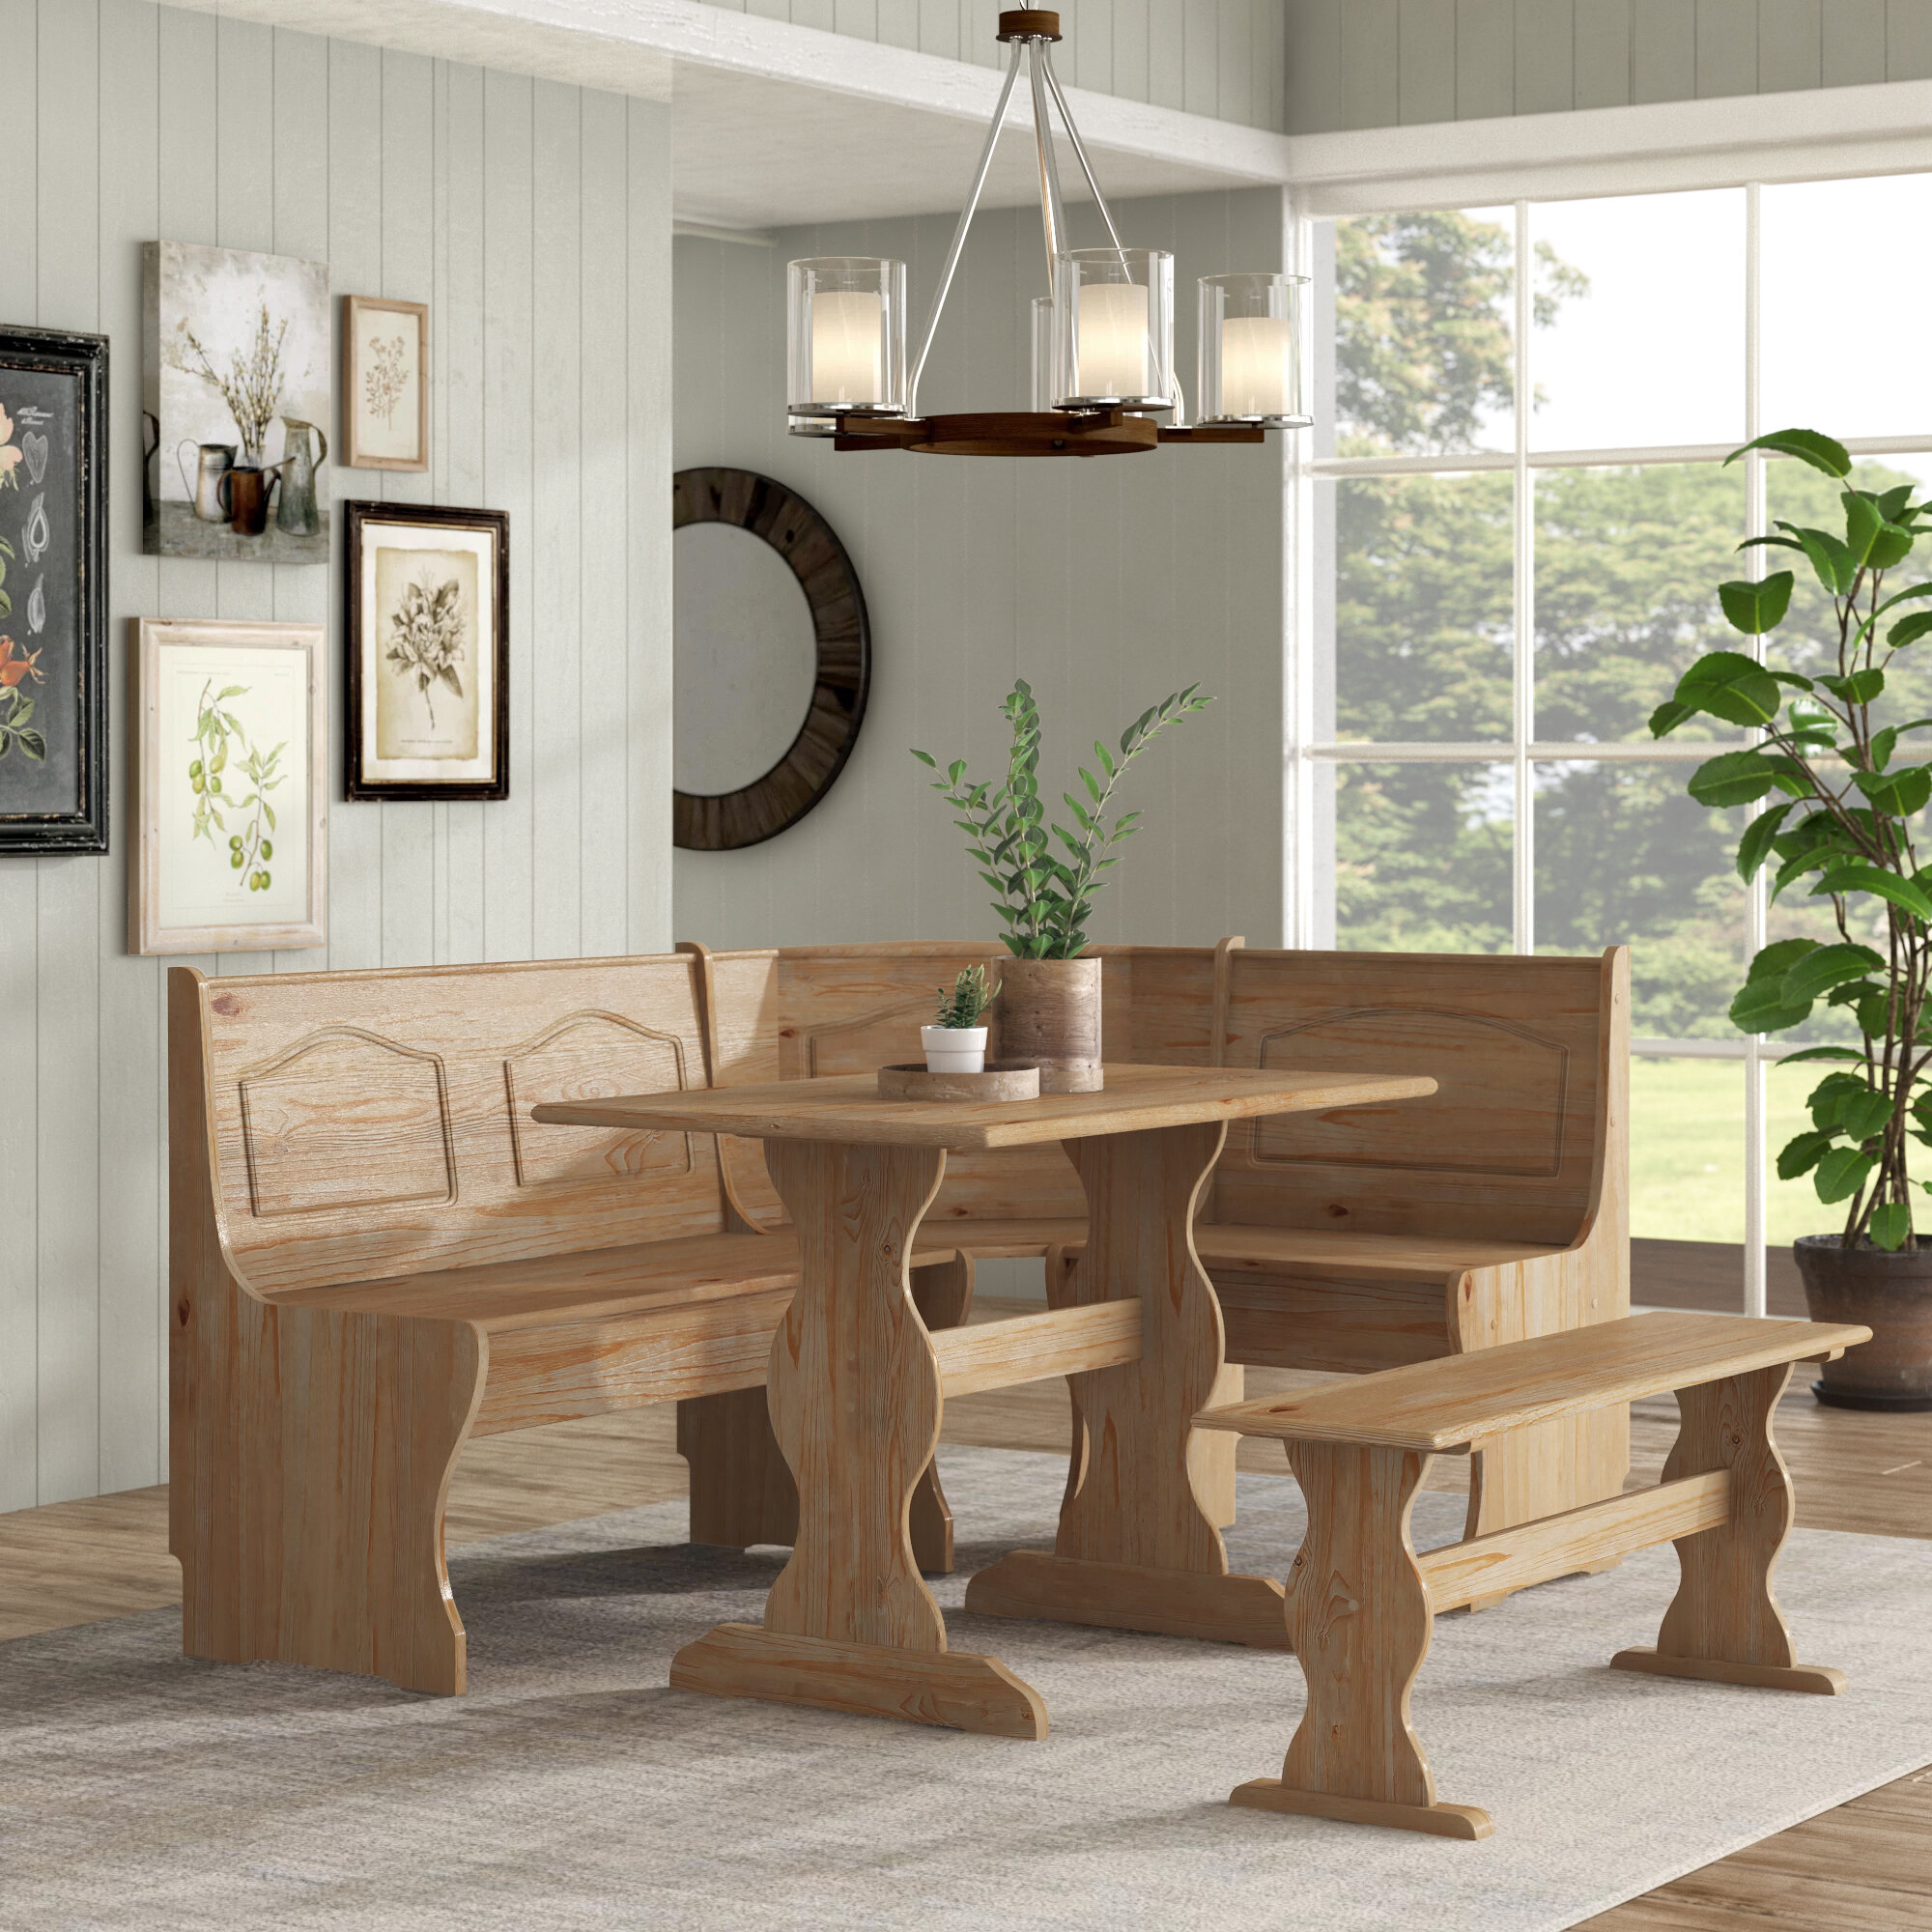 Picture of: Breakfast Kitchen Nook Solid Wood Seat Dining Corner Bench Chelsea Cushion Set Dining Sets